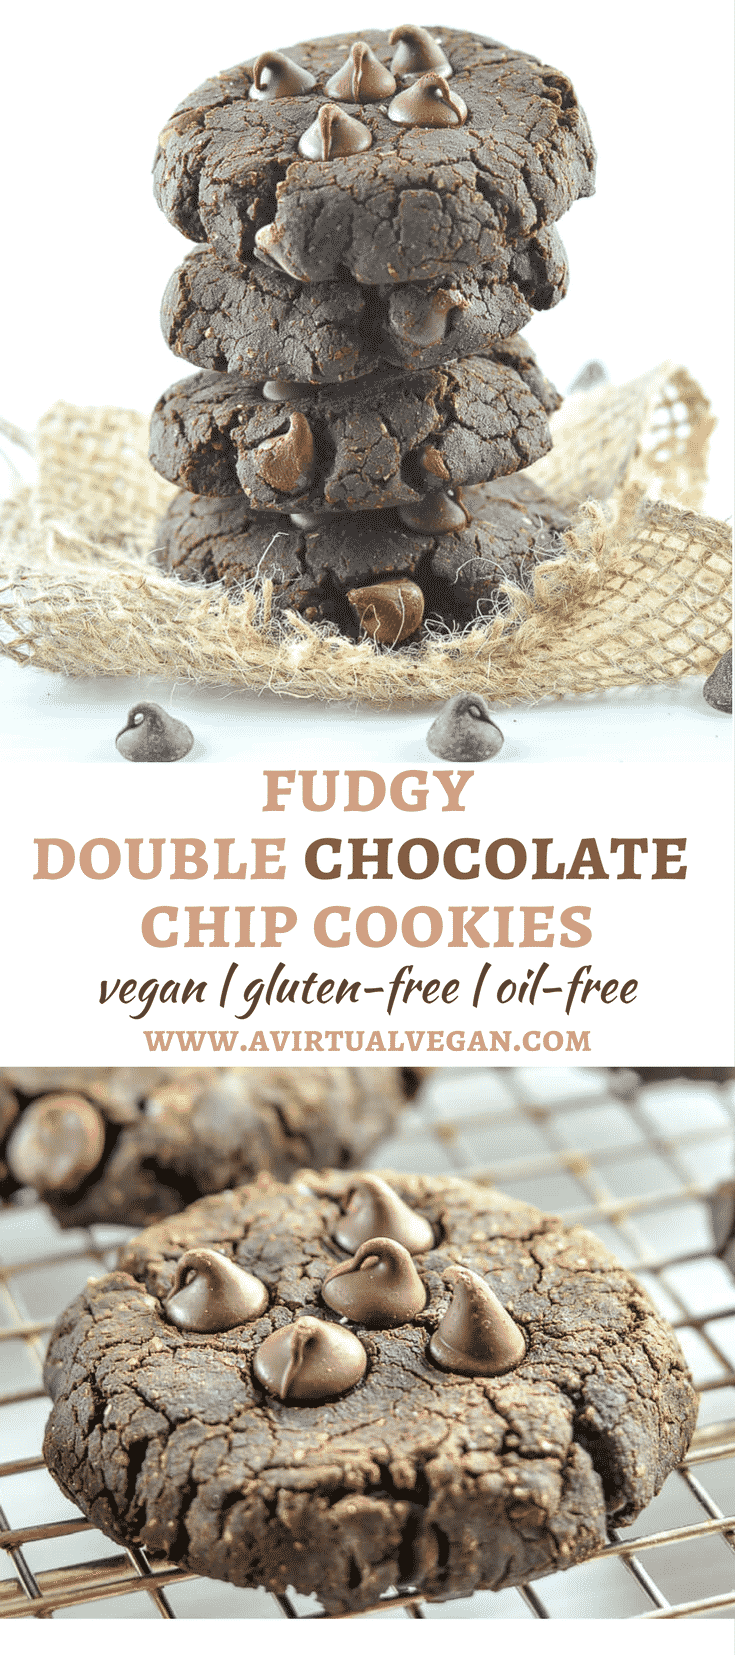 Rich, fudgy Double Chocolate Chip Cookies with squidgy, brownie-like insides & surprisingly healthy ingredients.